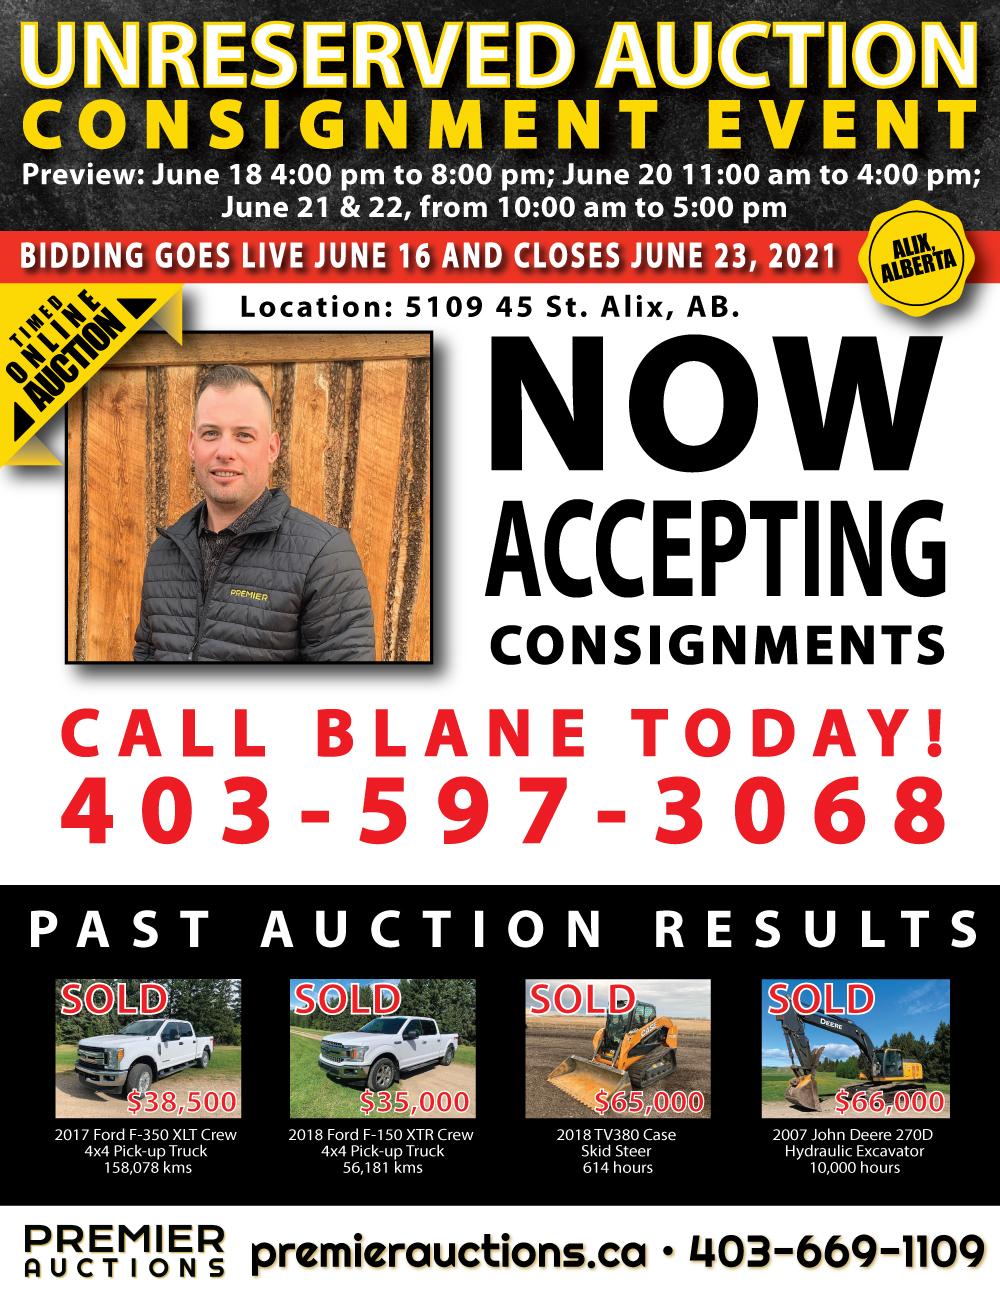 Consignment Auction June 23, 2021